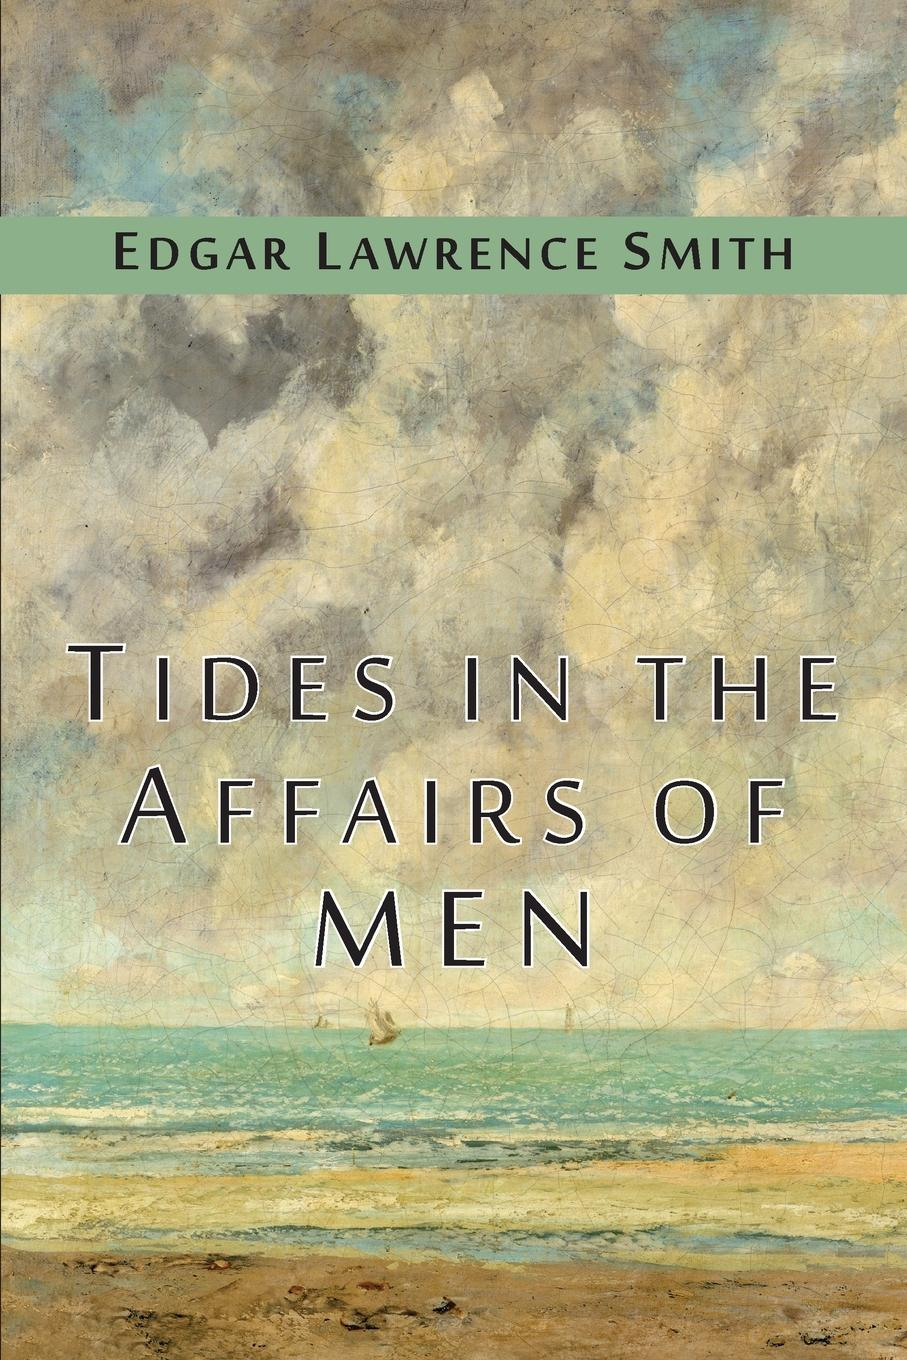 Tides in the Affairs of Men. An Approach to the Appraisal of Economic Change 2017 Reprint of 1939 Edition. Full facsimile of the original edition...